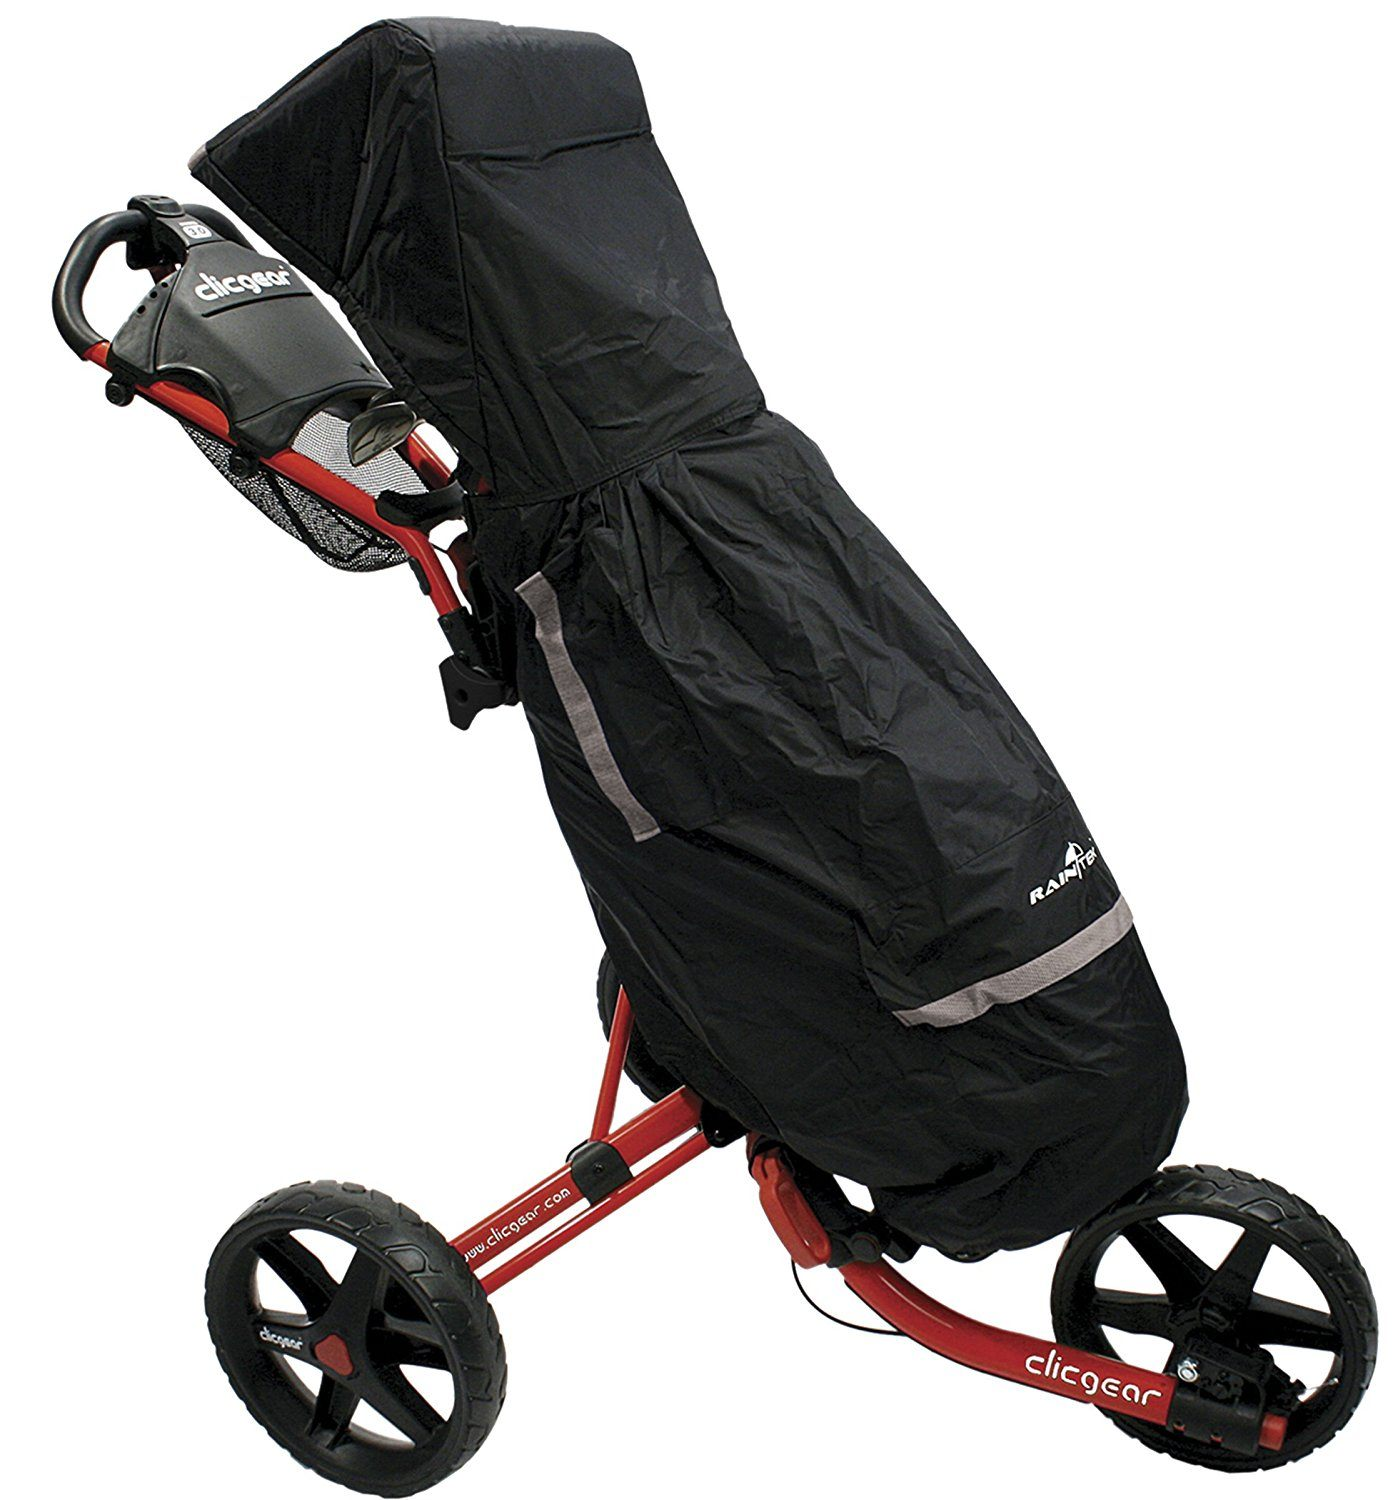 Rain Tek Golf Bag Cover for best junior golf bag